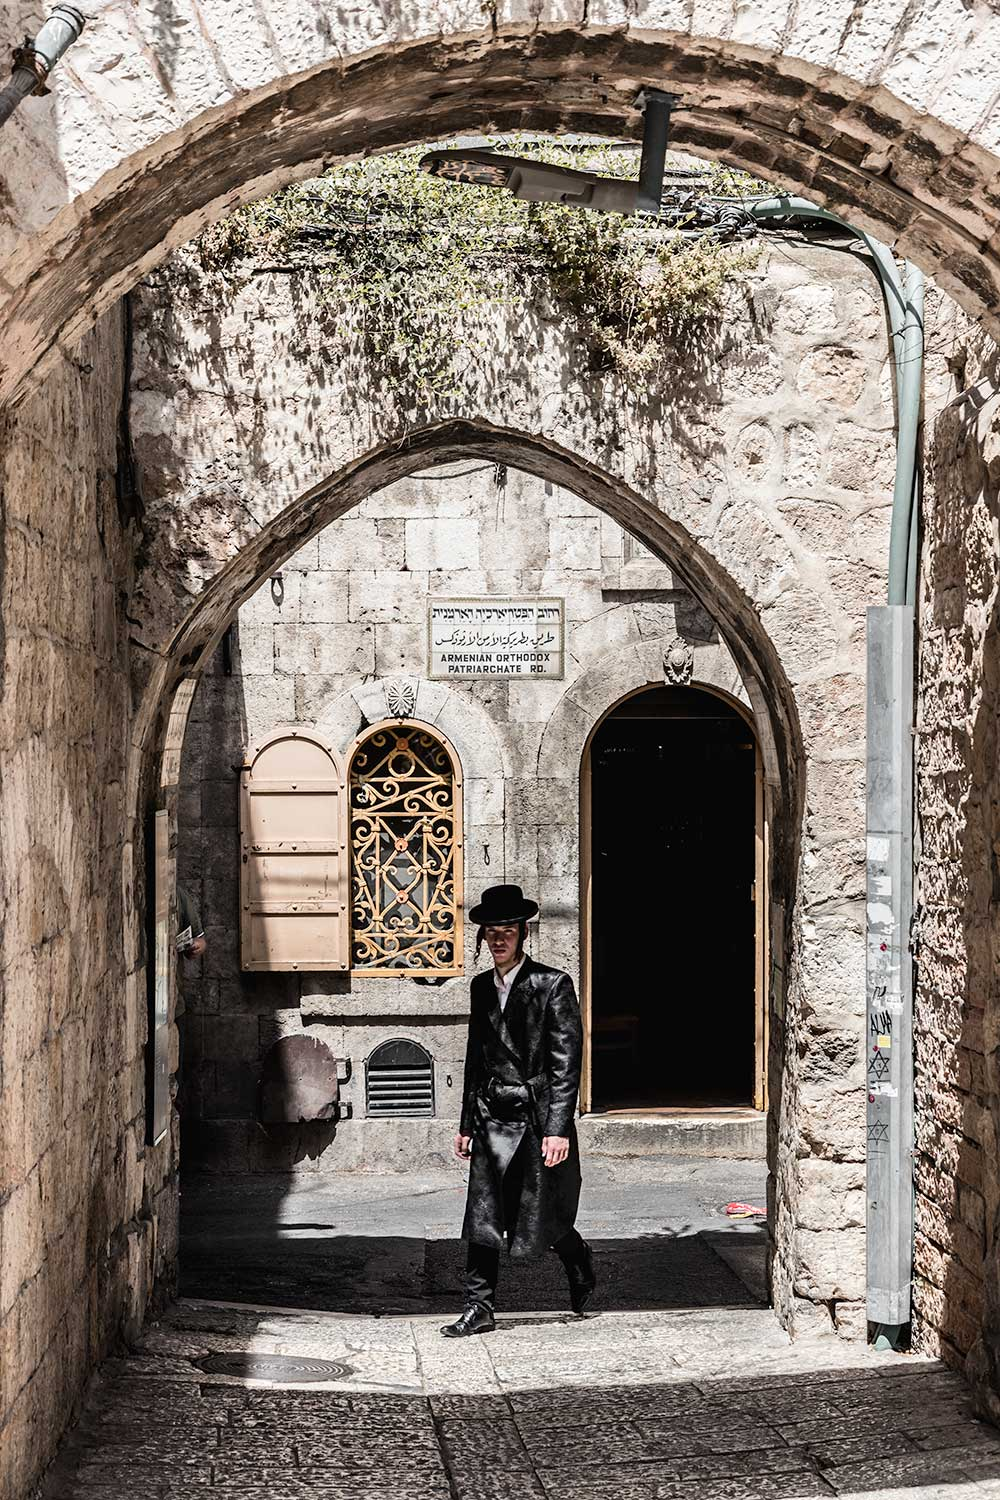 Orthodox Jews in the Old City of Jerusalem on our two day itinerary